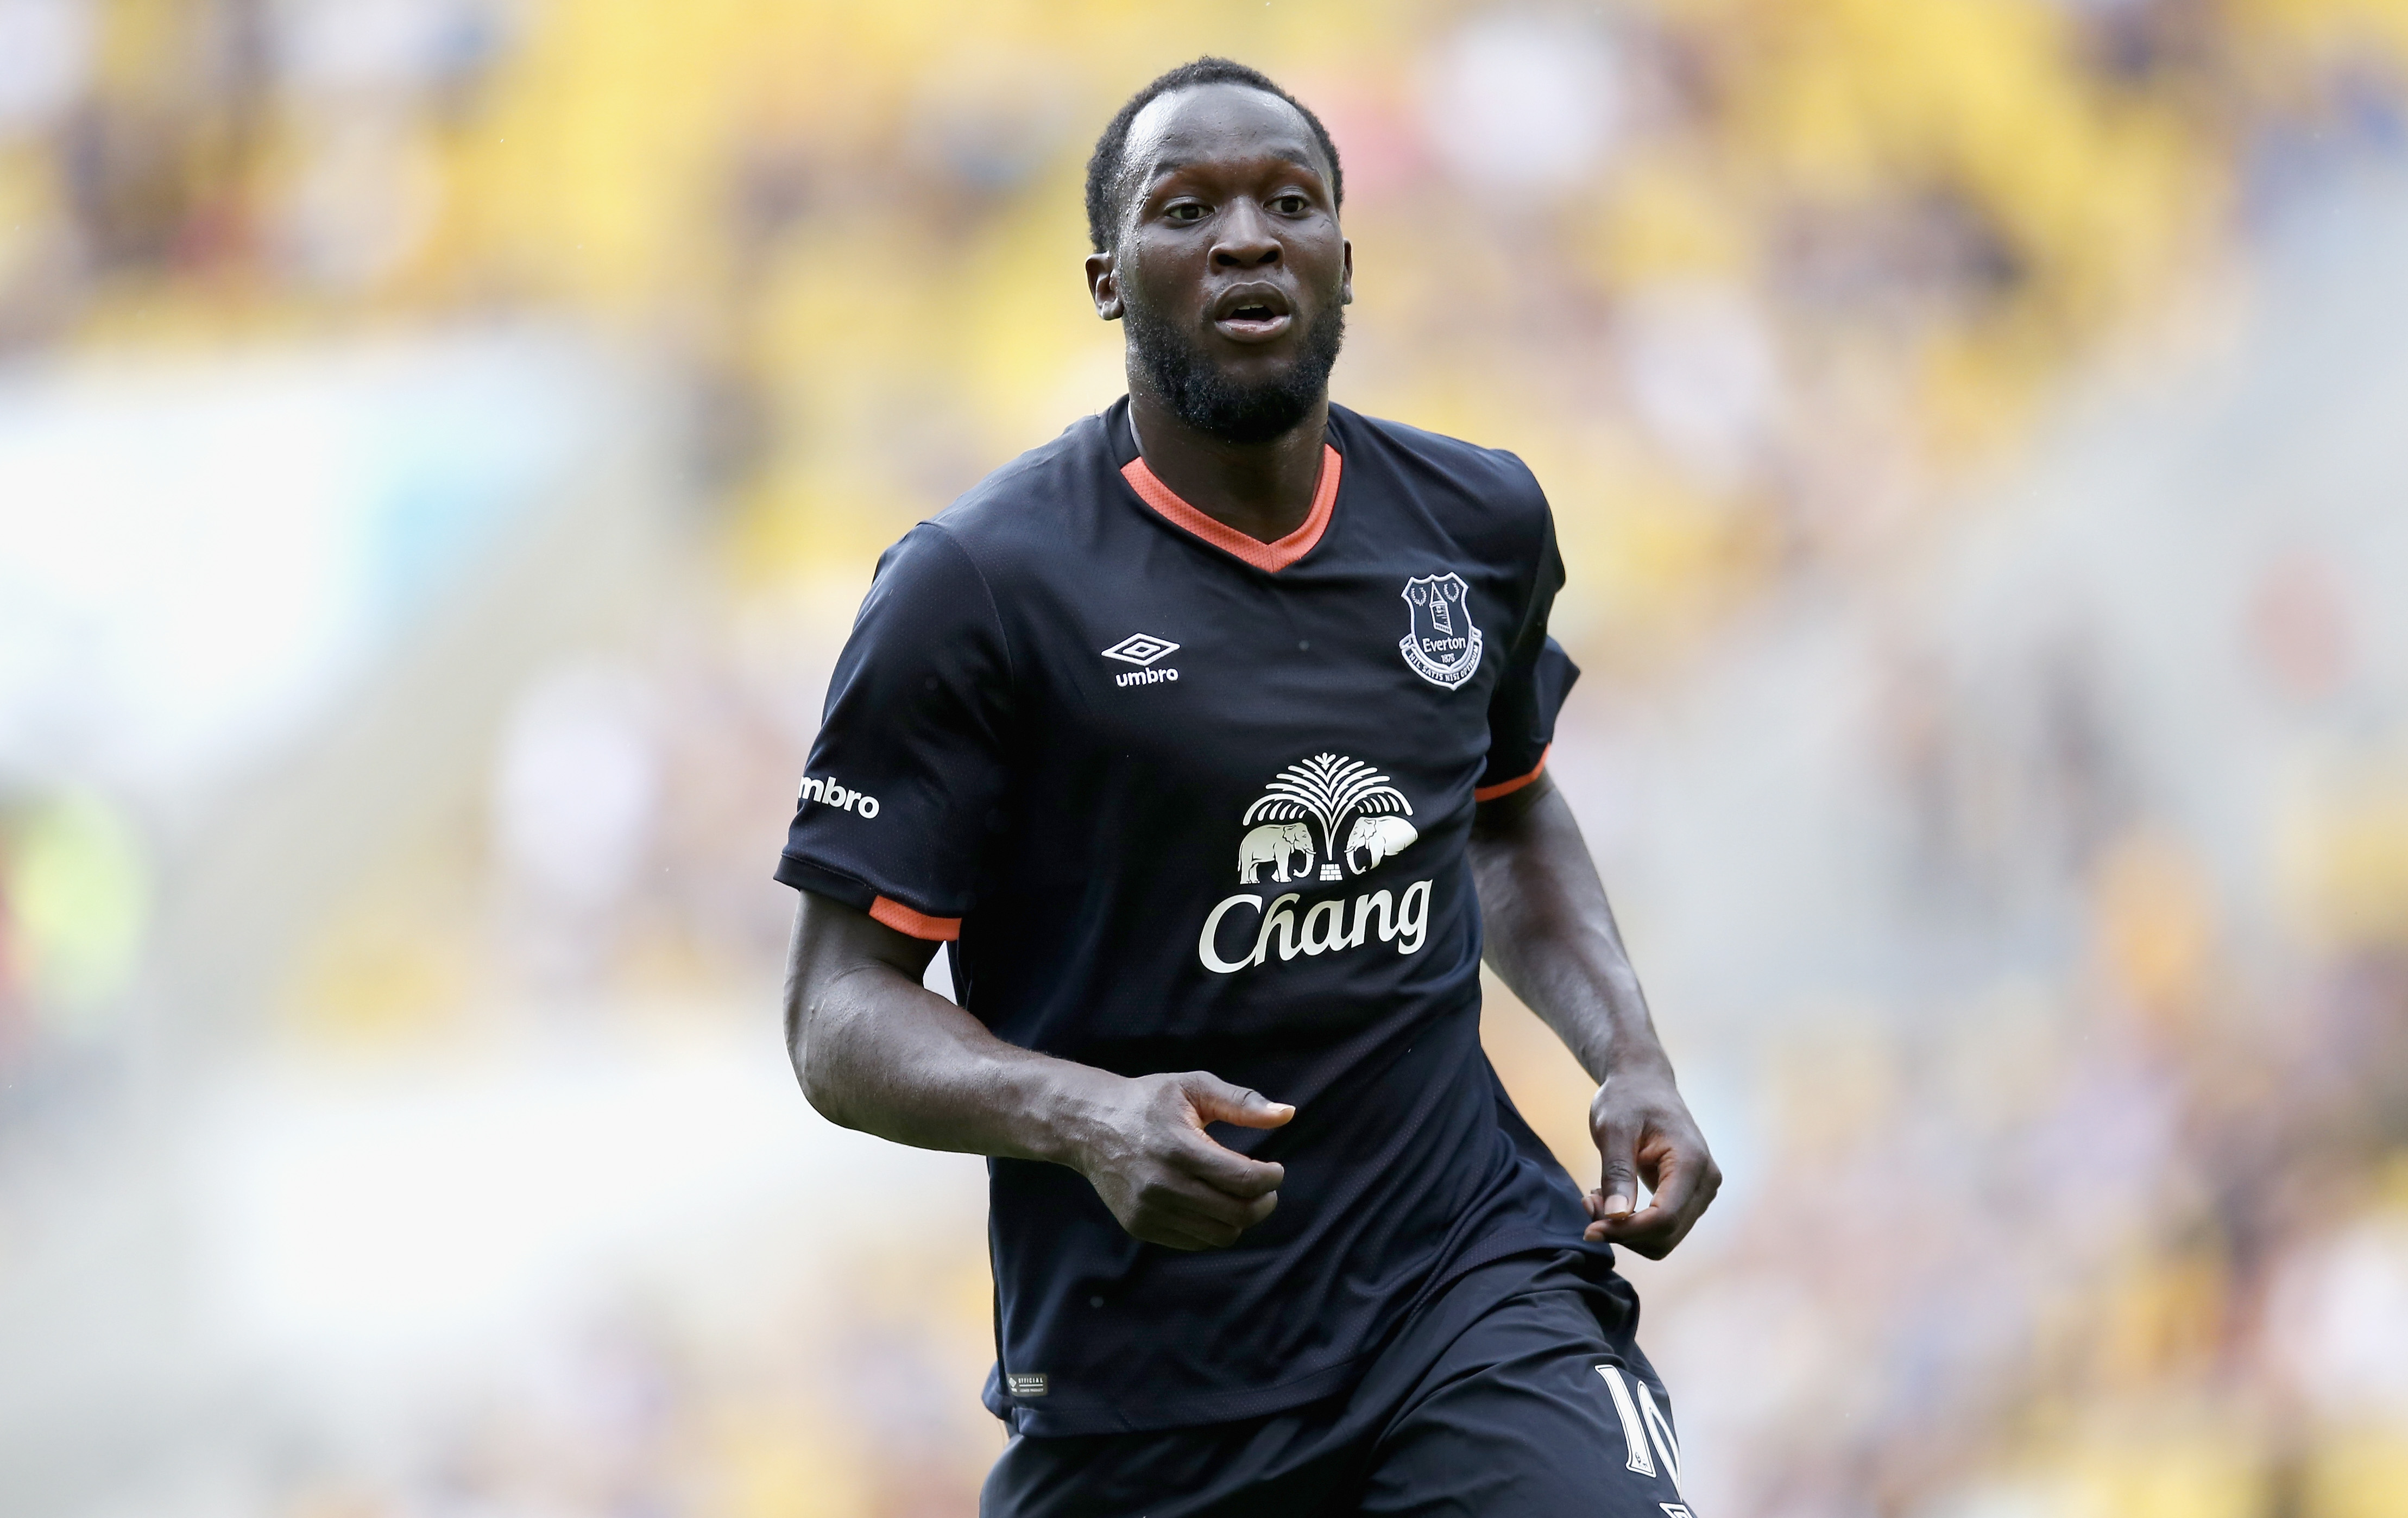 Romelu Lukaku could hand in transfer request to force Chelsea move